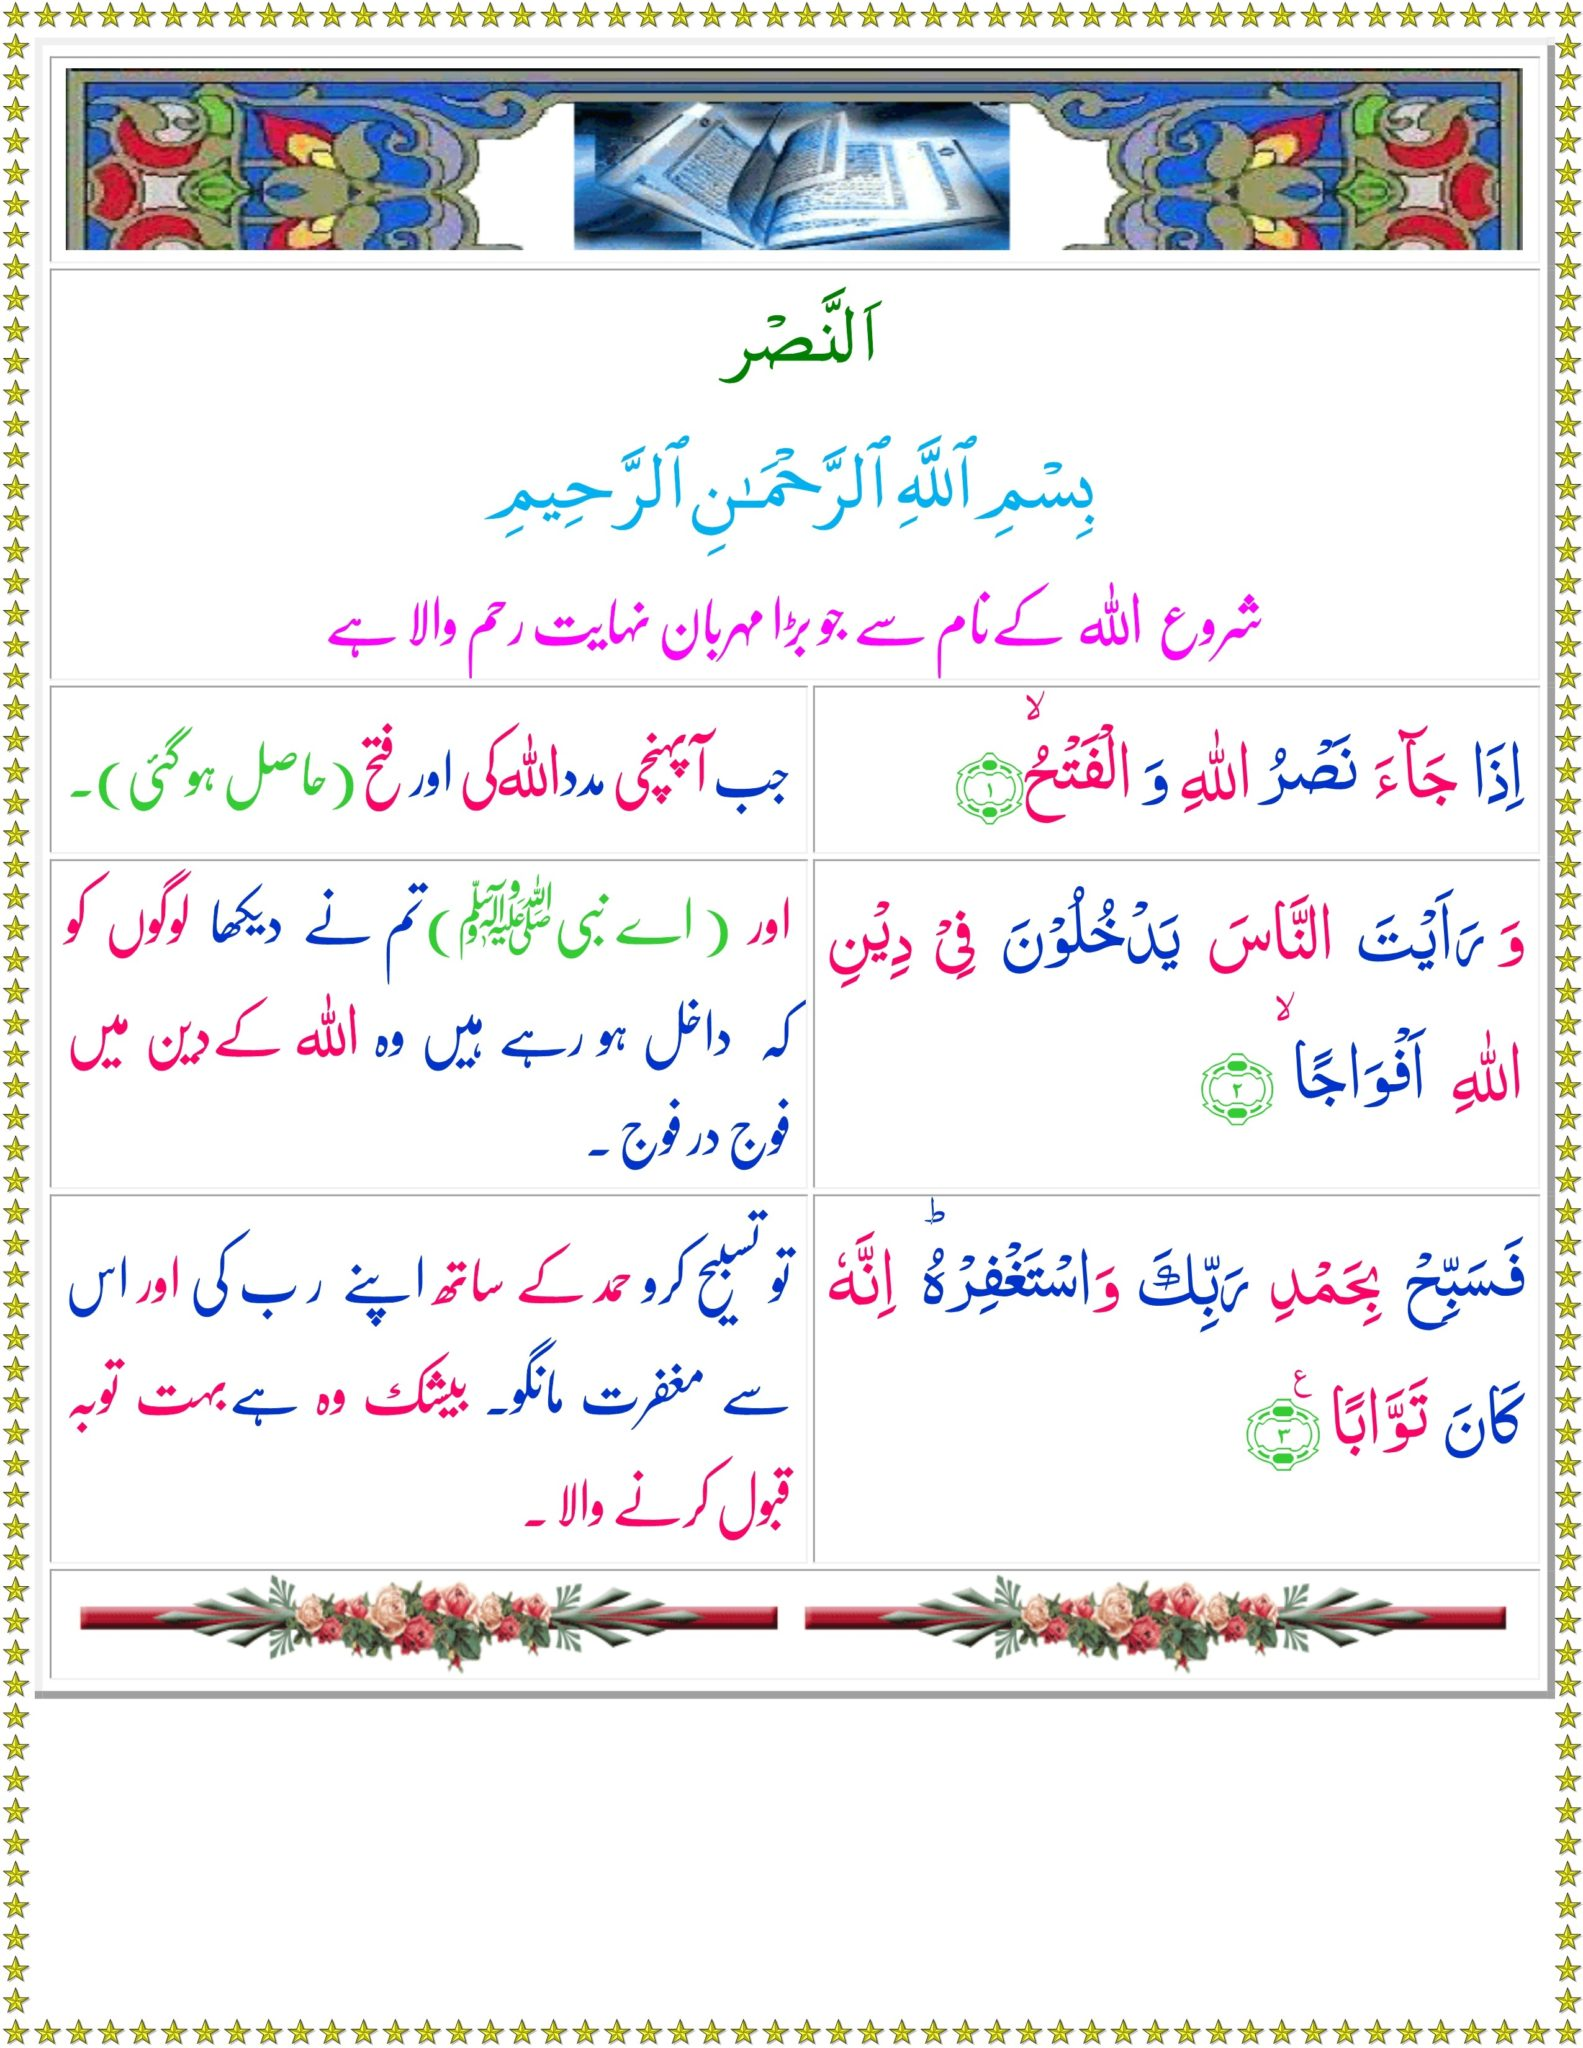 Surah Nasr translation in Urdu, Hindi